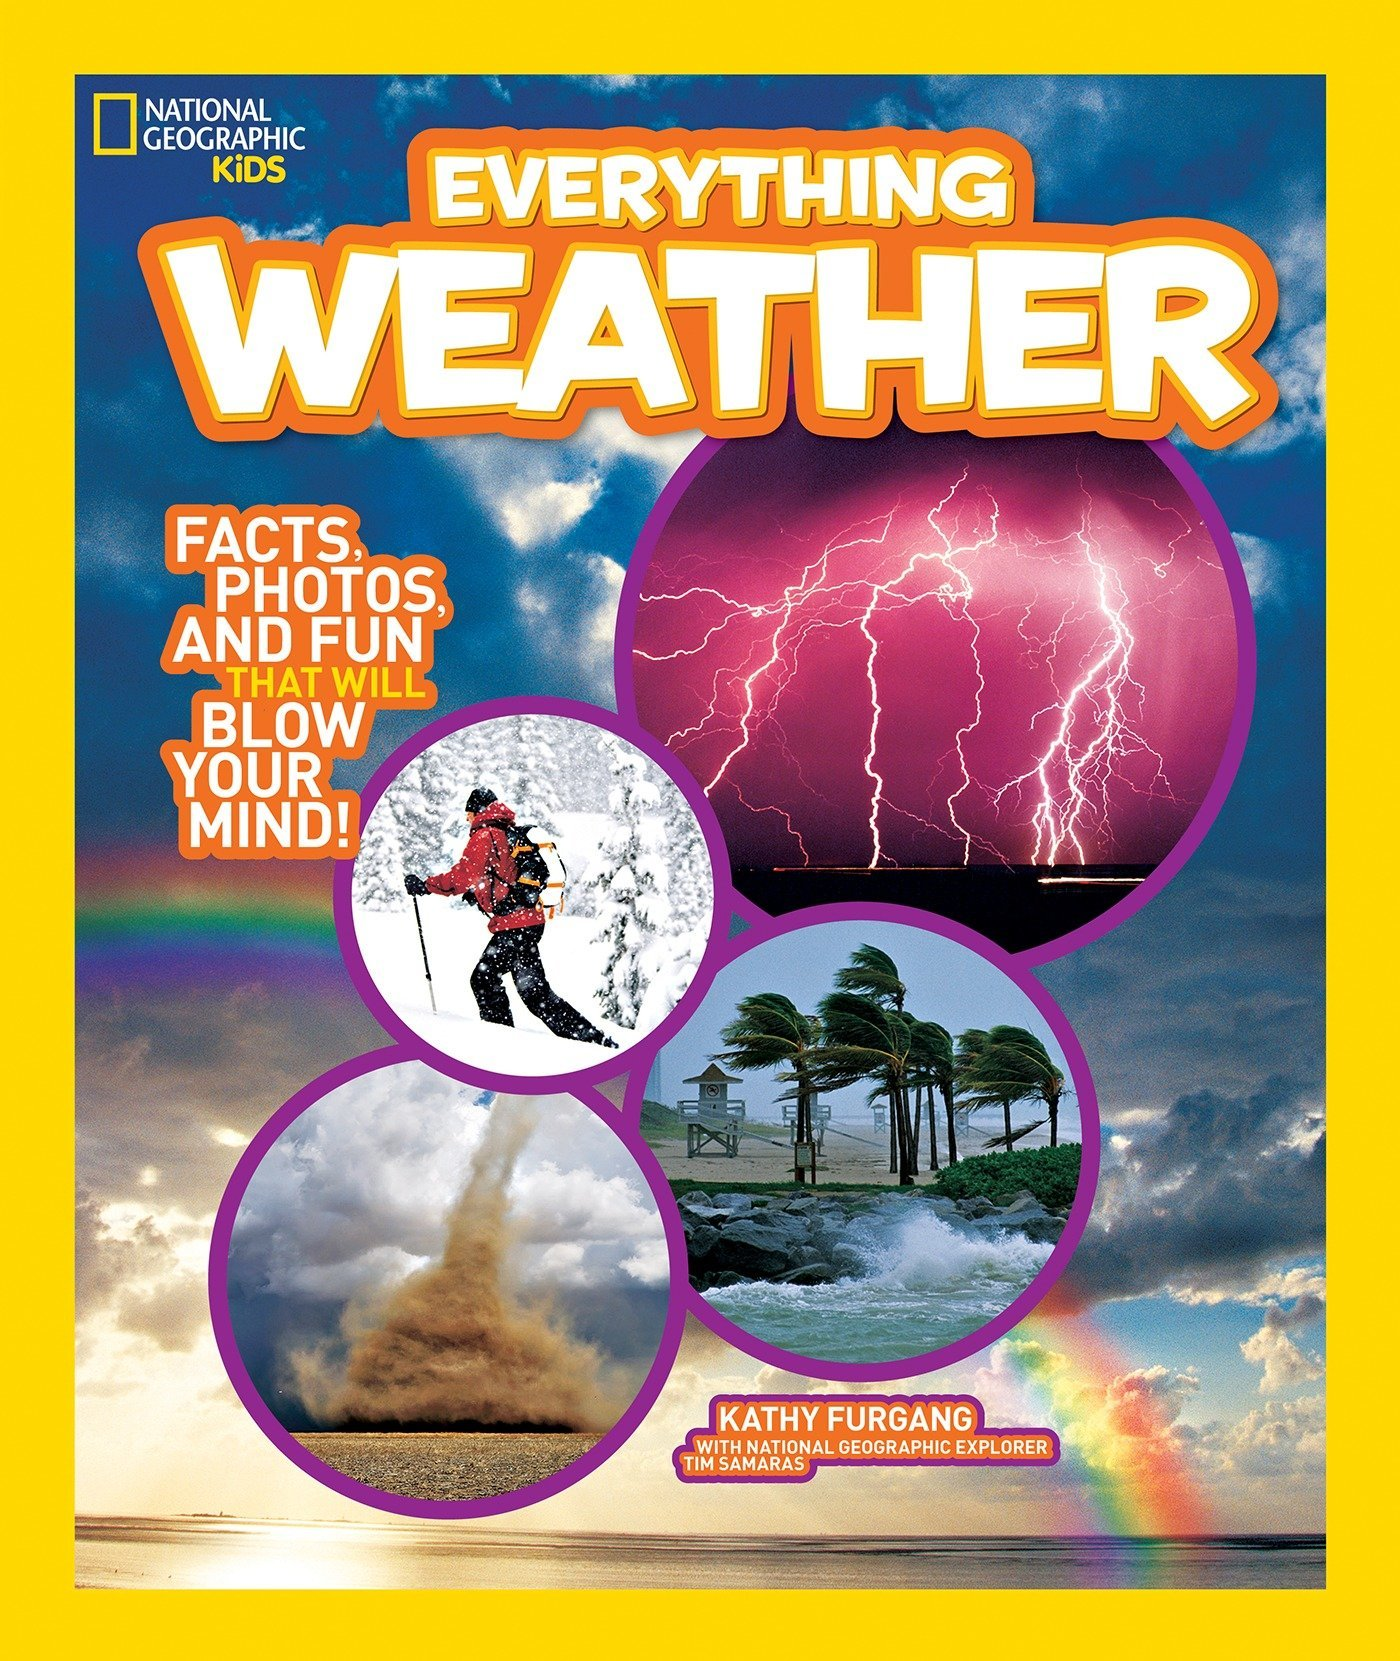 81dpsTnq4+L - National Geographic Kids Everything Weather: Facts, Photos, and Fun that Will Blow You Away